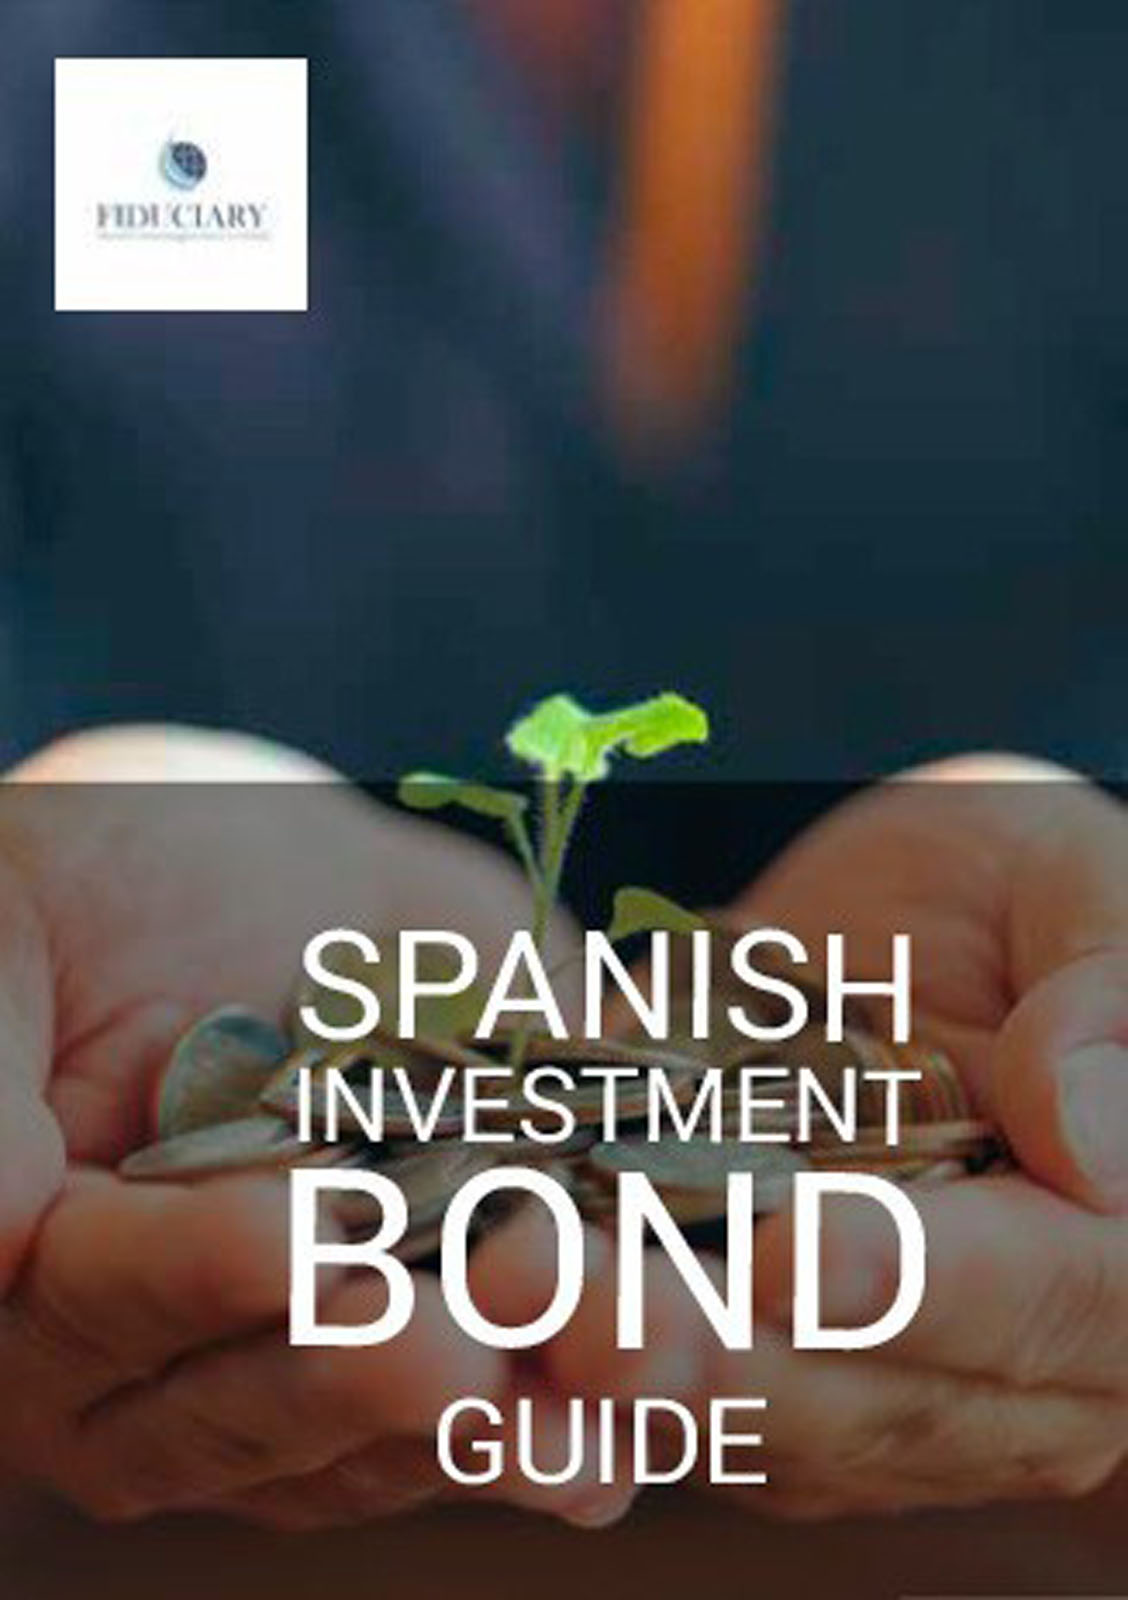 Spanish Investment Bond Guide Image